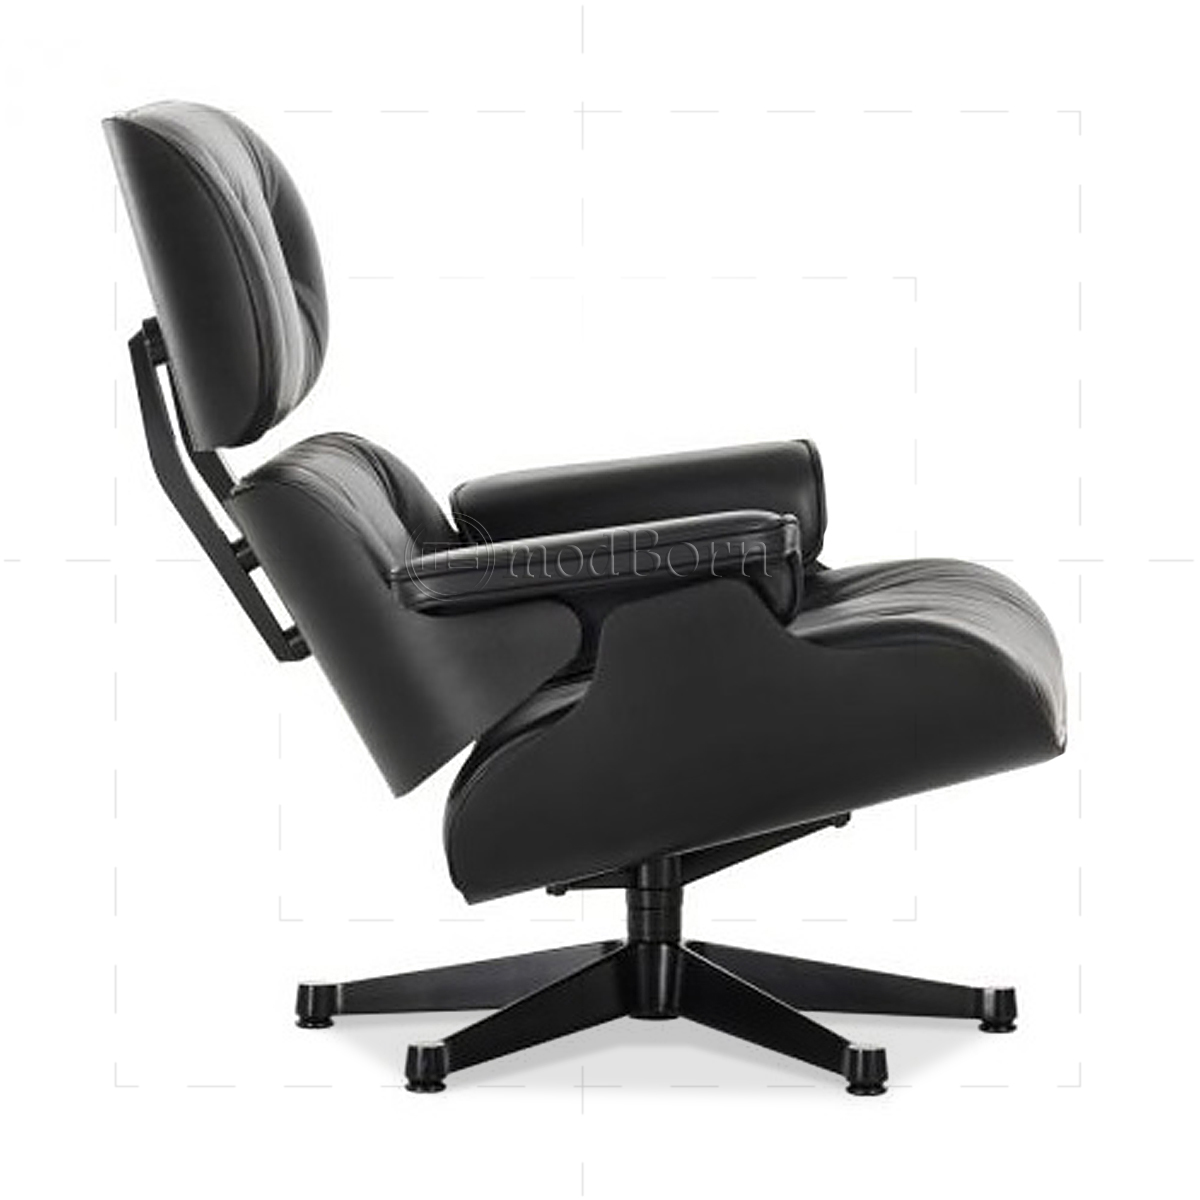 Eames style lounge chair and ottoman black leather black wood for Vitra stuhl replica